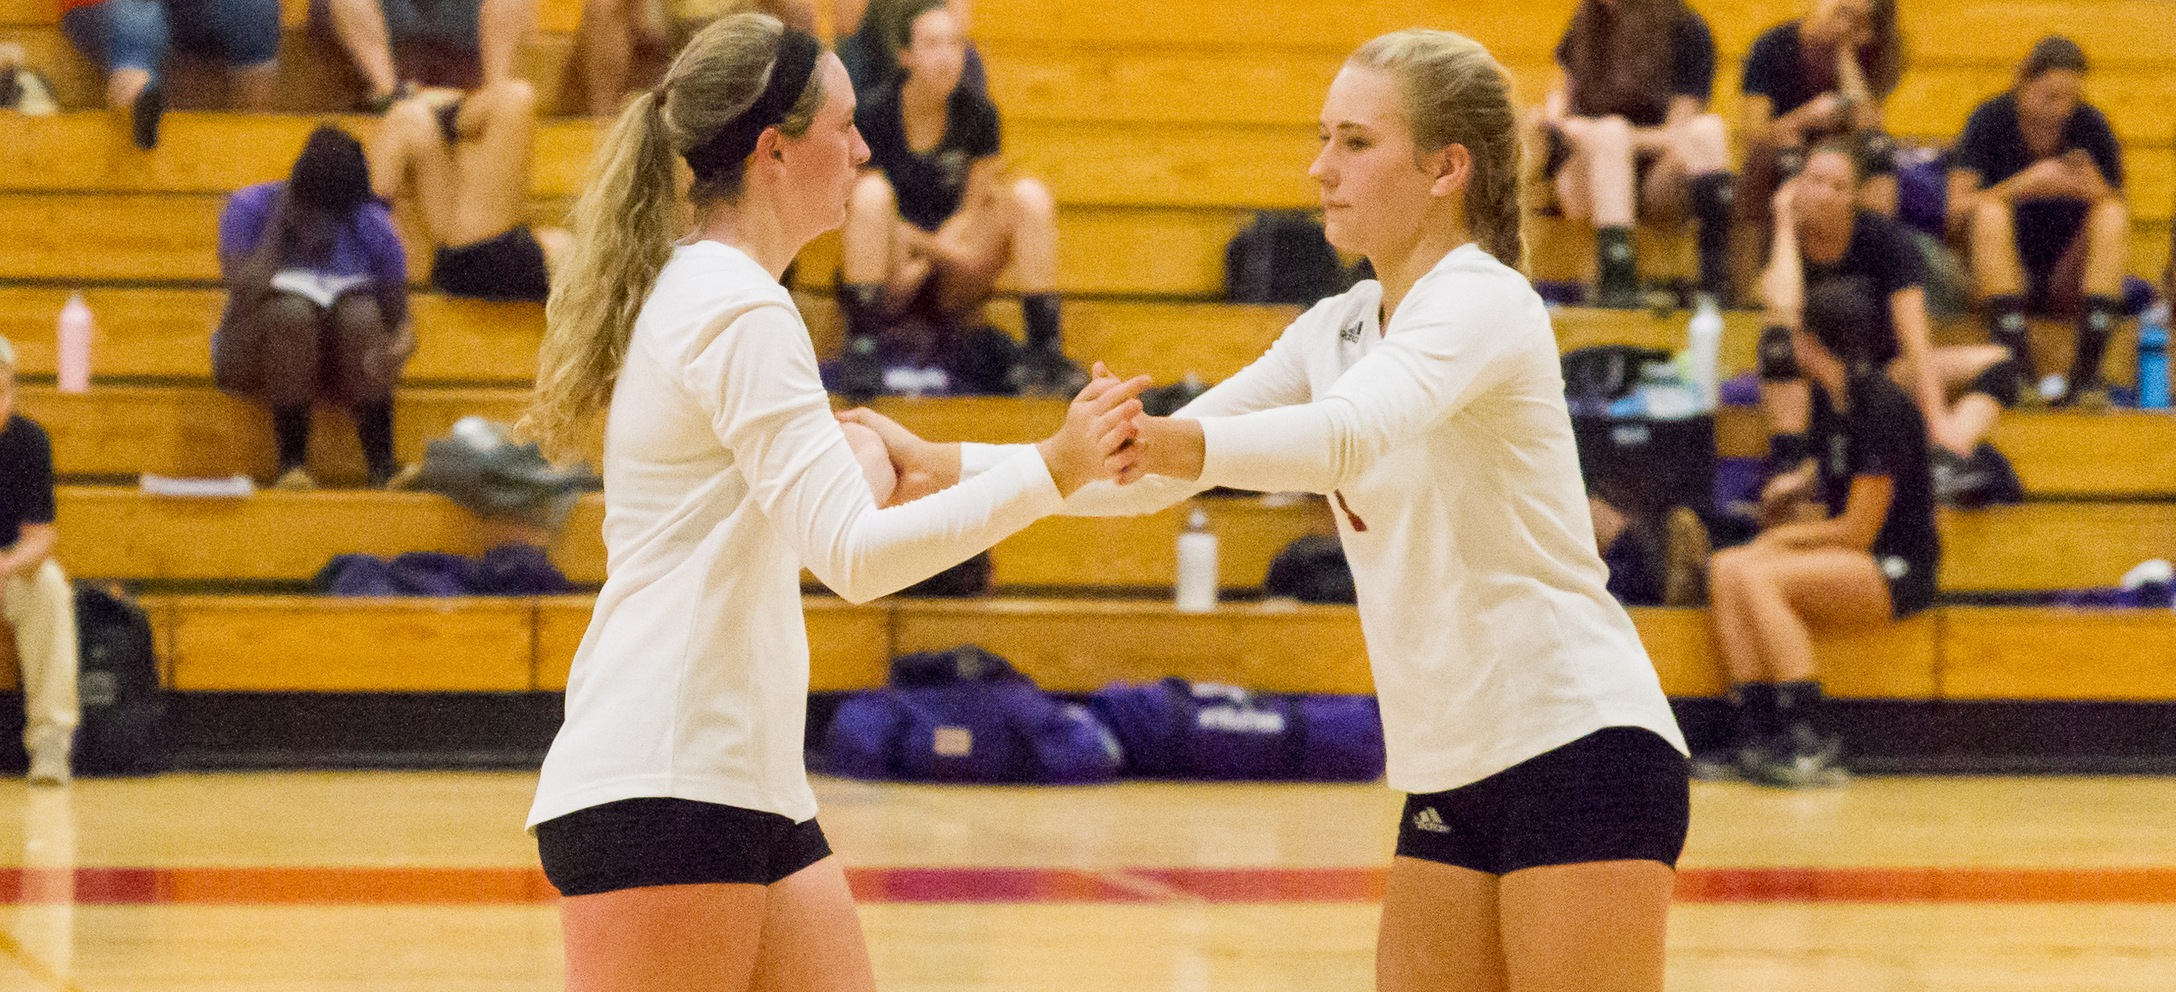 Women's Volleyball Drills Anna Maria, USJ For GNAC Trimatch Sweep